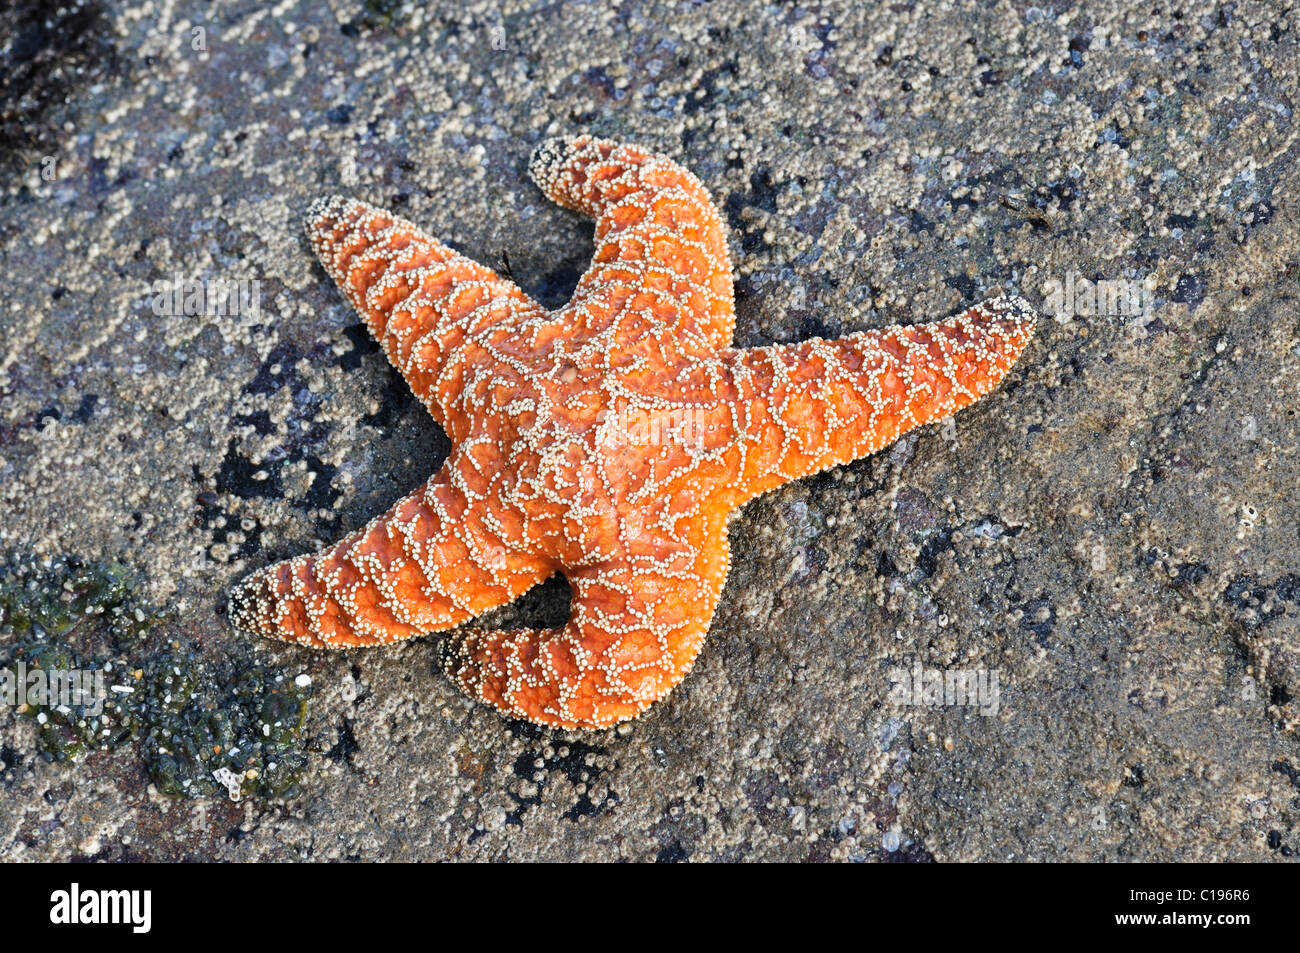 Sea star (Echinodermata spec.) in a pool left by the tide, Olympic National Park, Washington, USA, North America - Stock Image